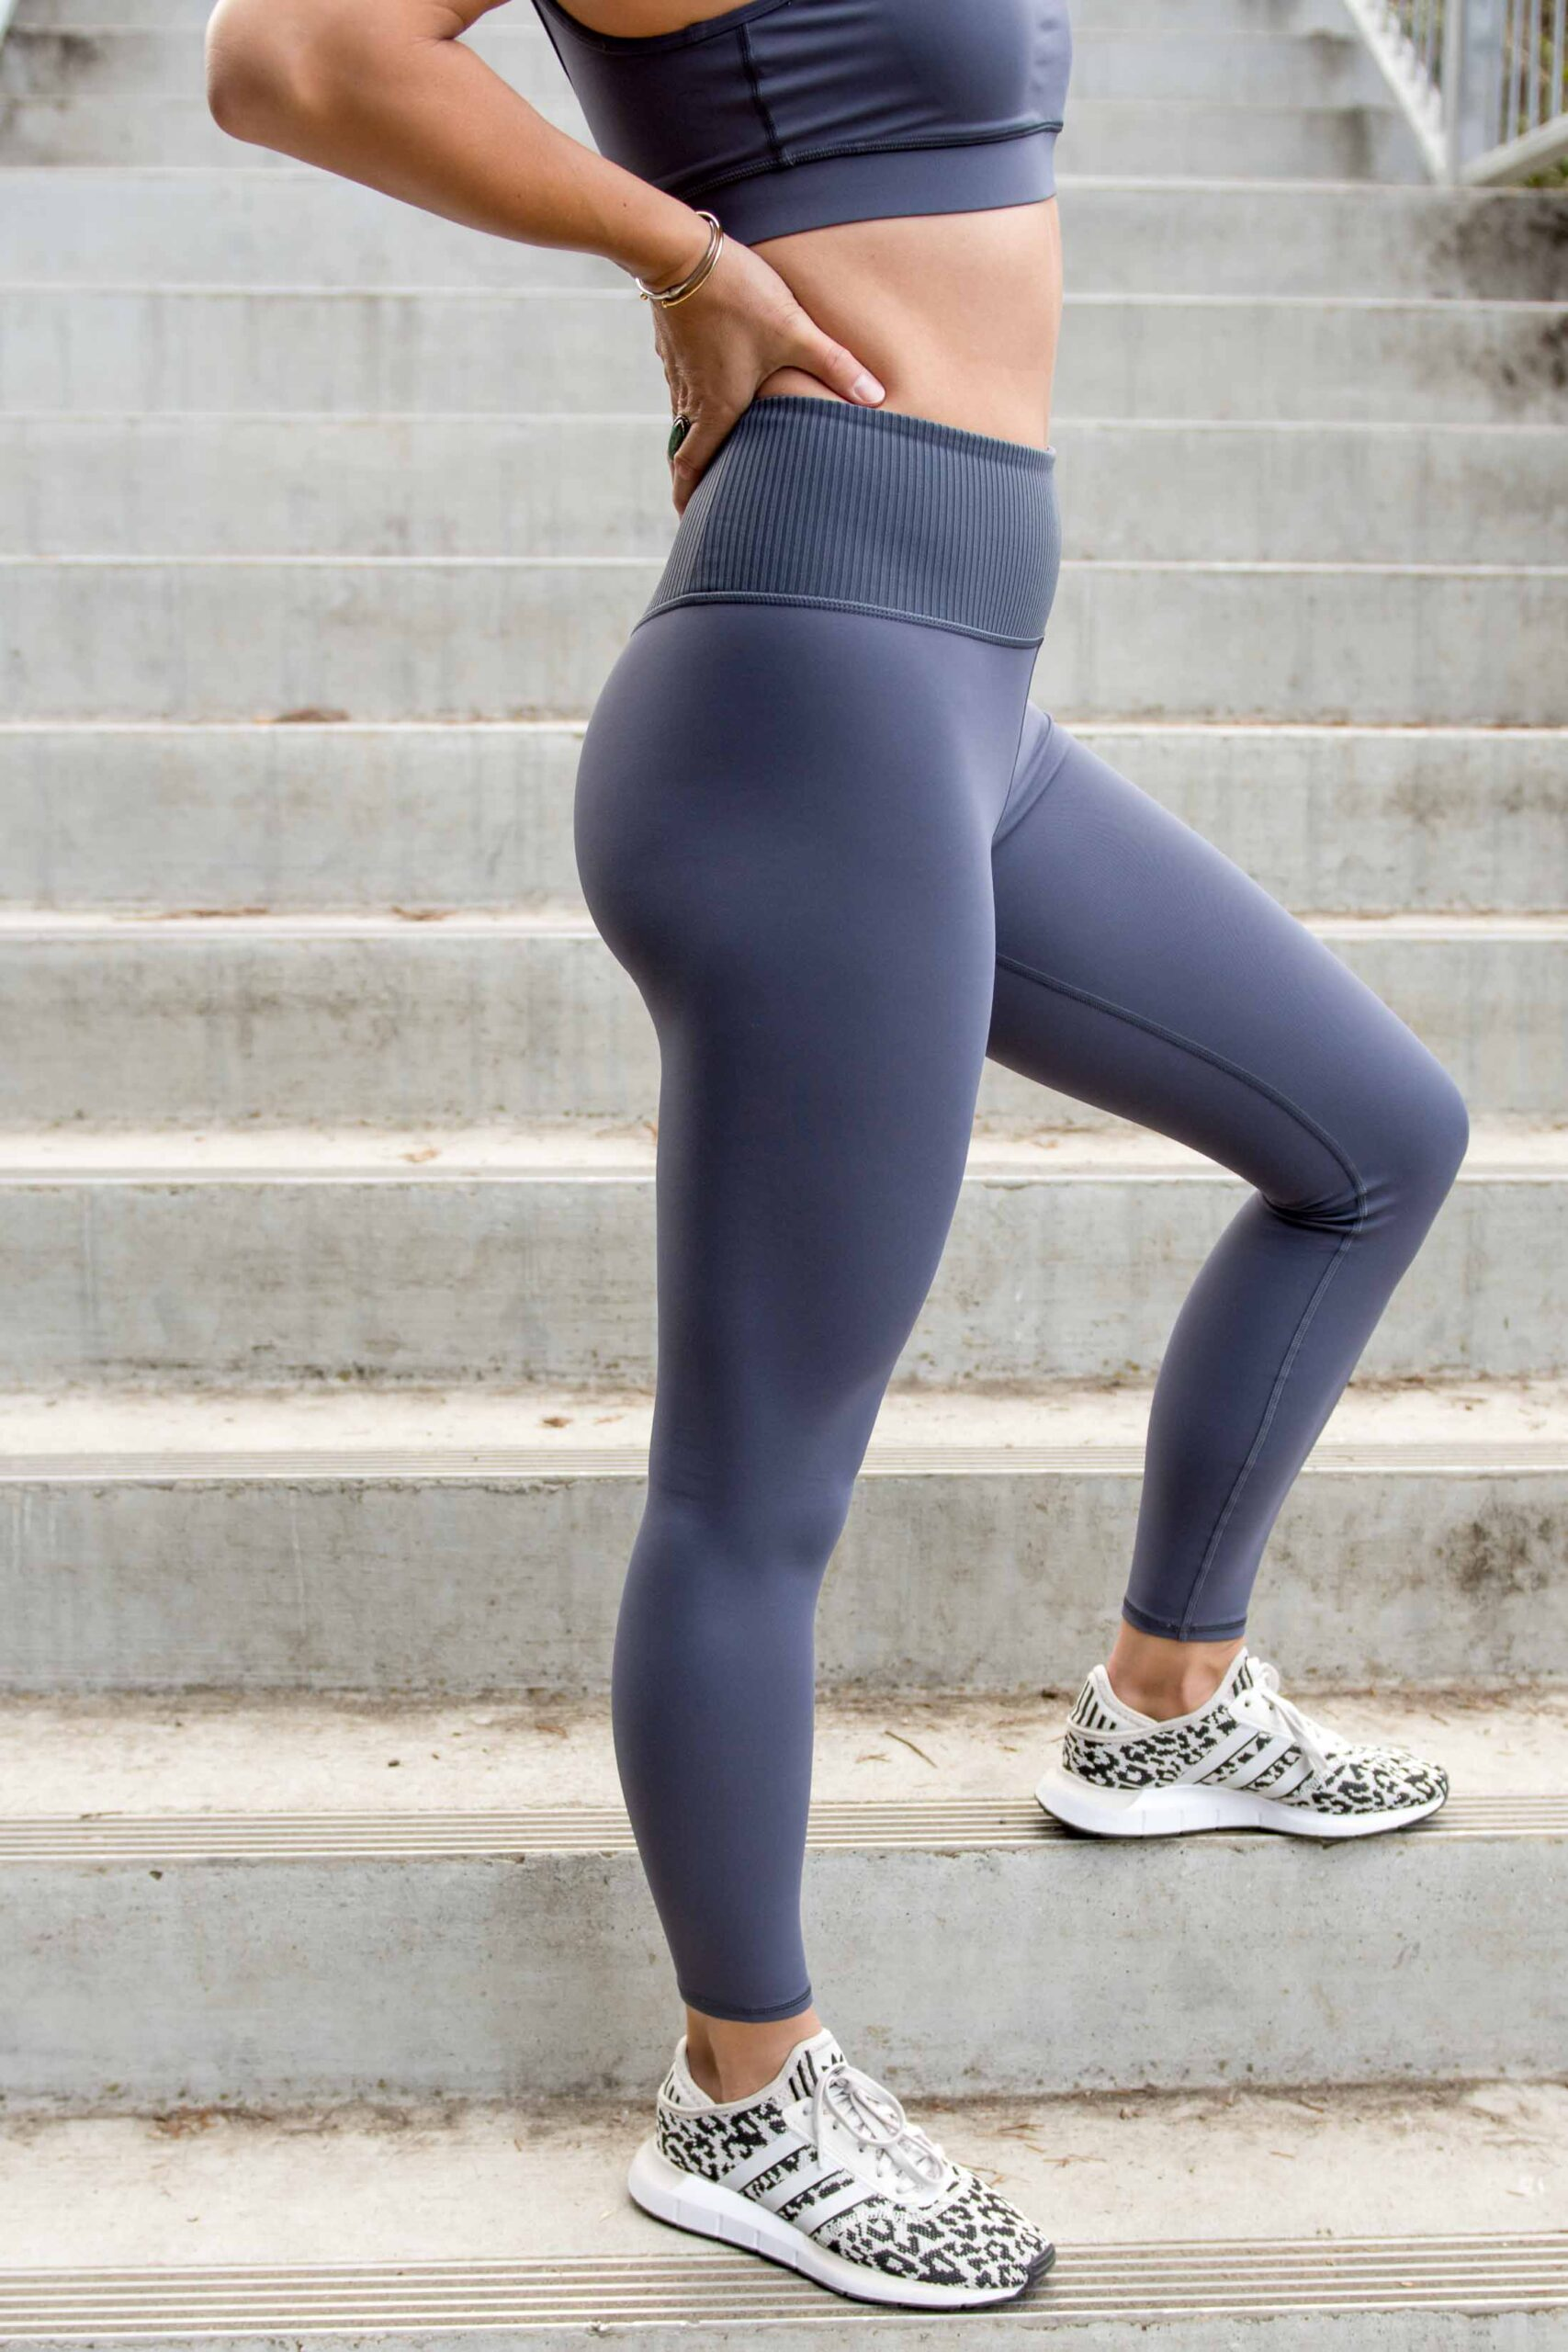 Vuori's BreatheInterlock activewear felt flattering out of the gate. No pinching or smooshing. Just ultra-smooth, buttery fabrics that skim curves without digging in & move as you move.